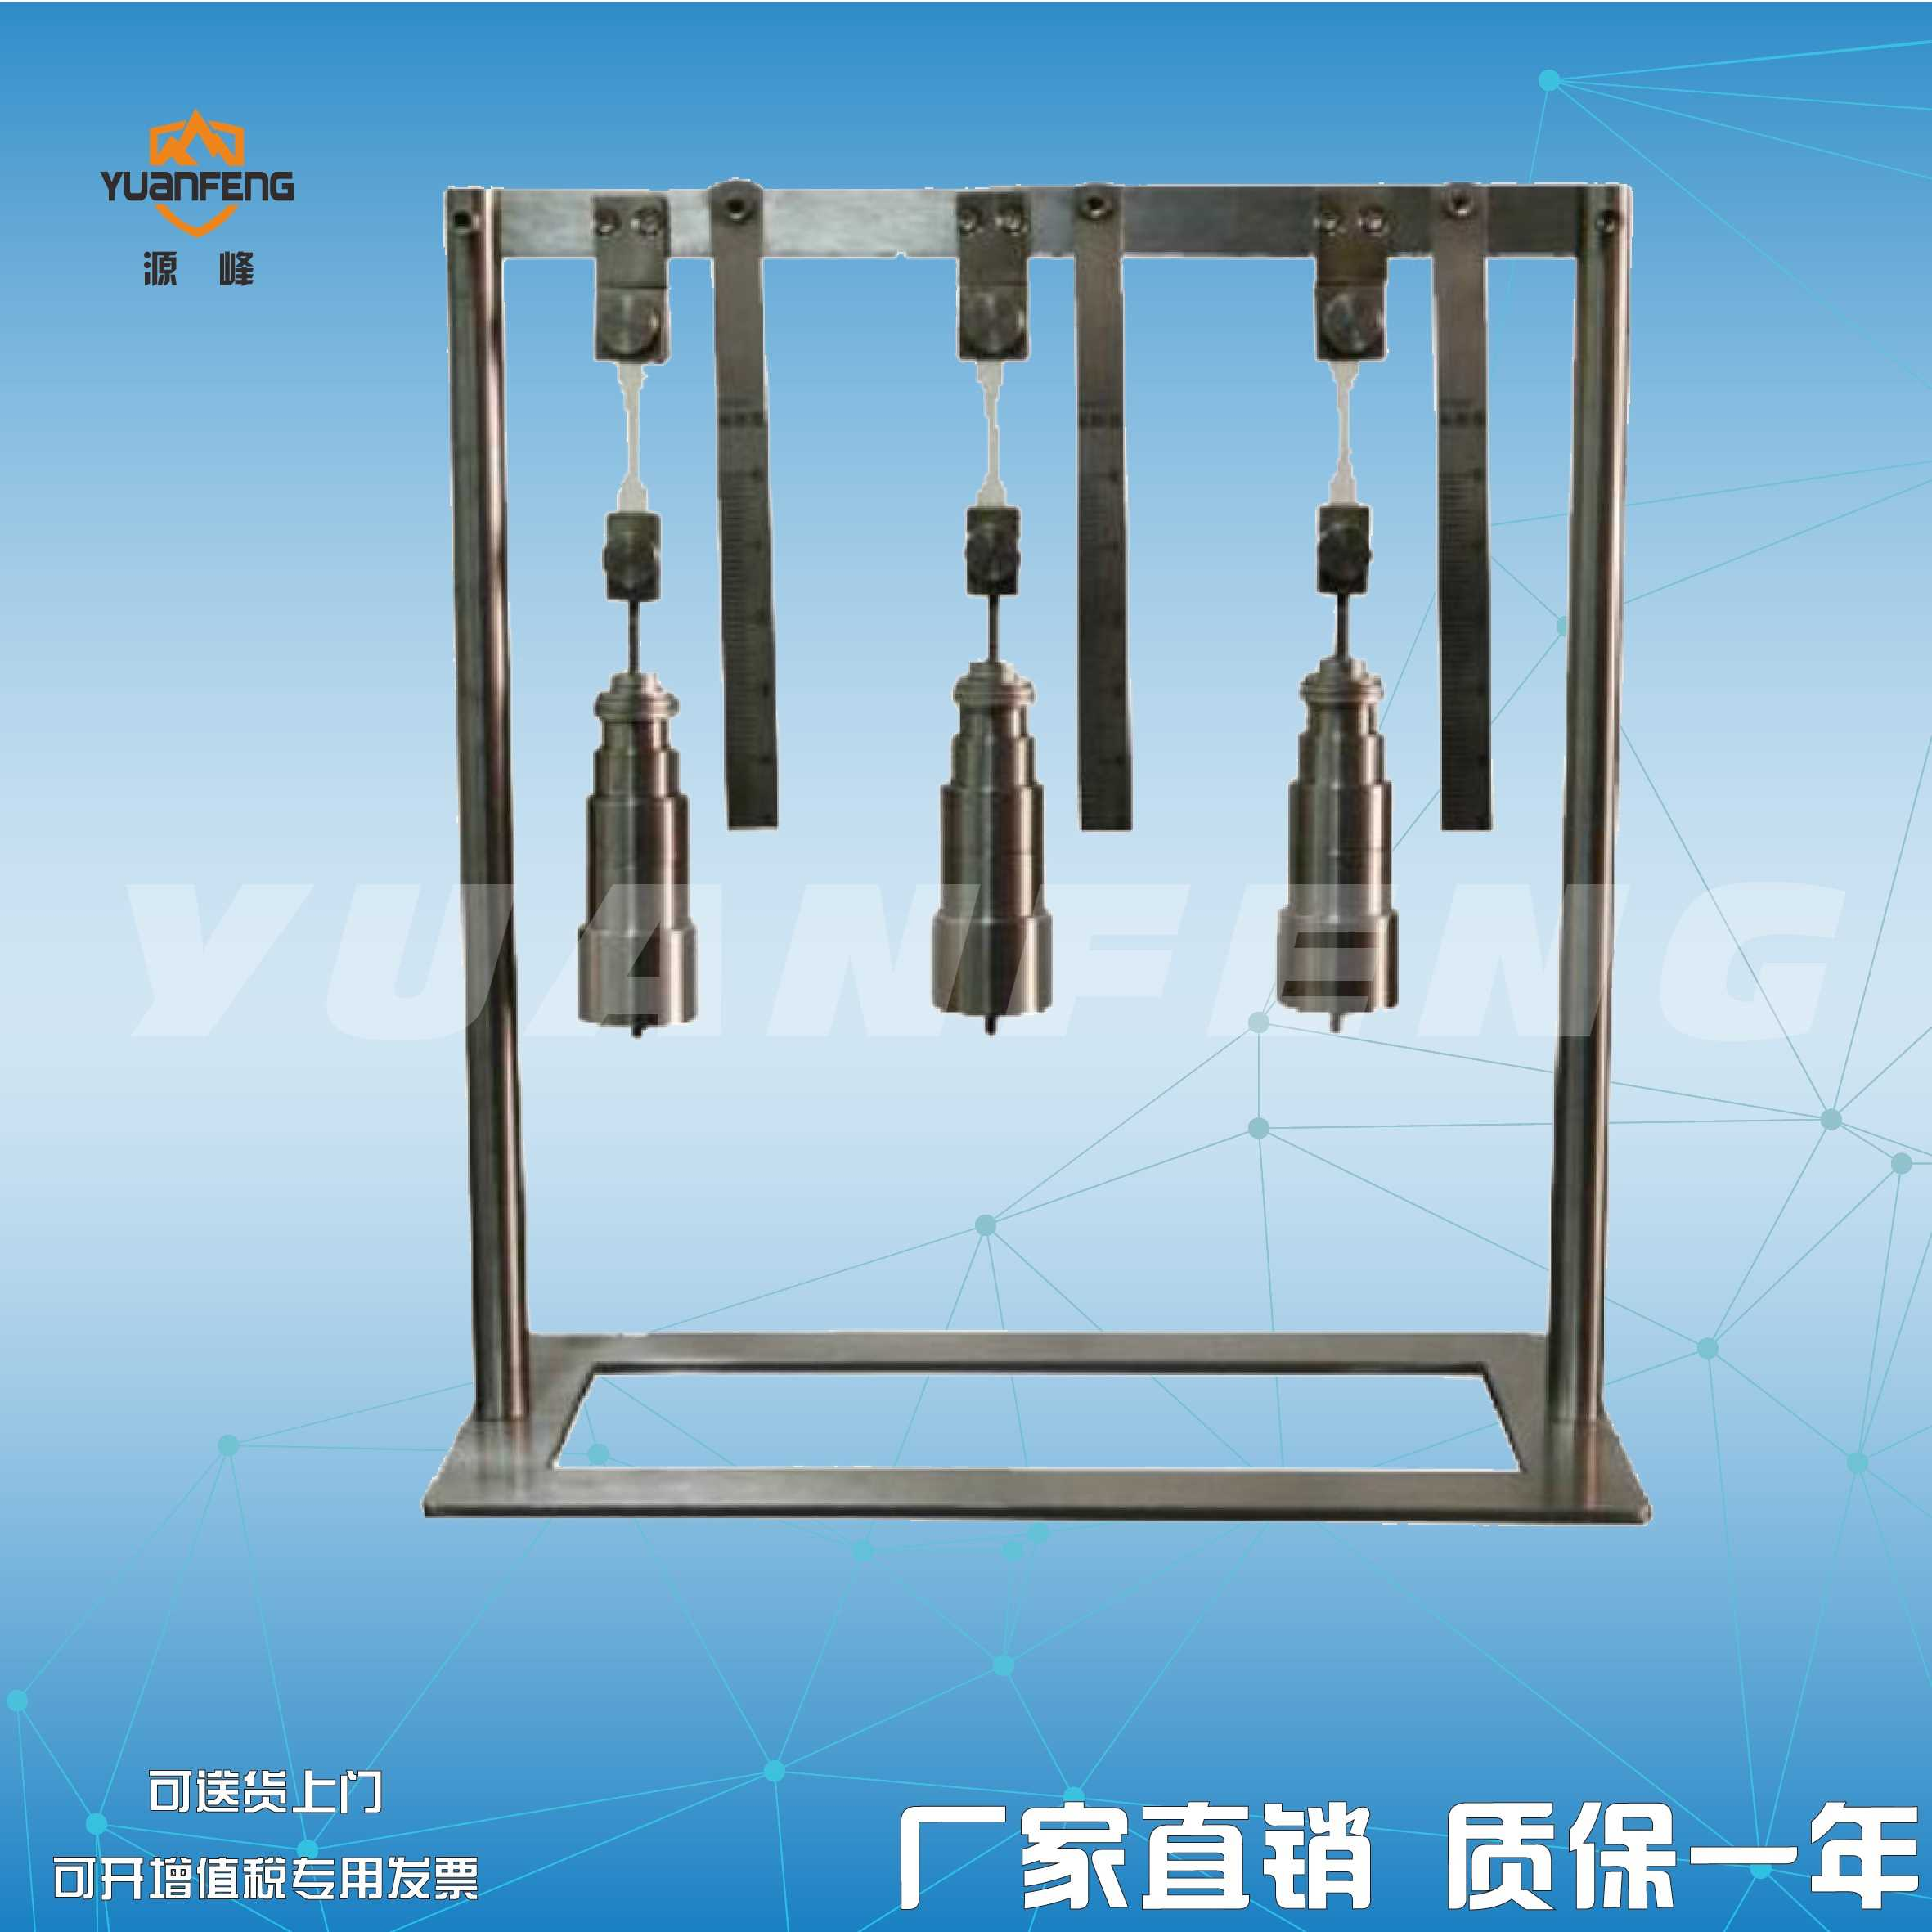 Thermal extension device, Yangzhou manufacturer, matching device of thermal aging test chamber